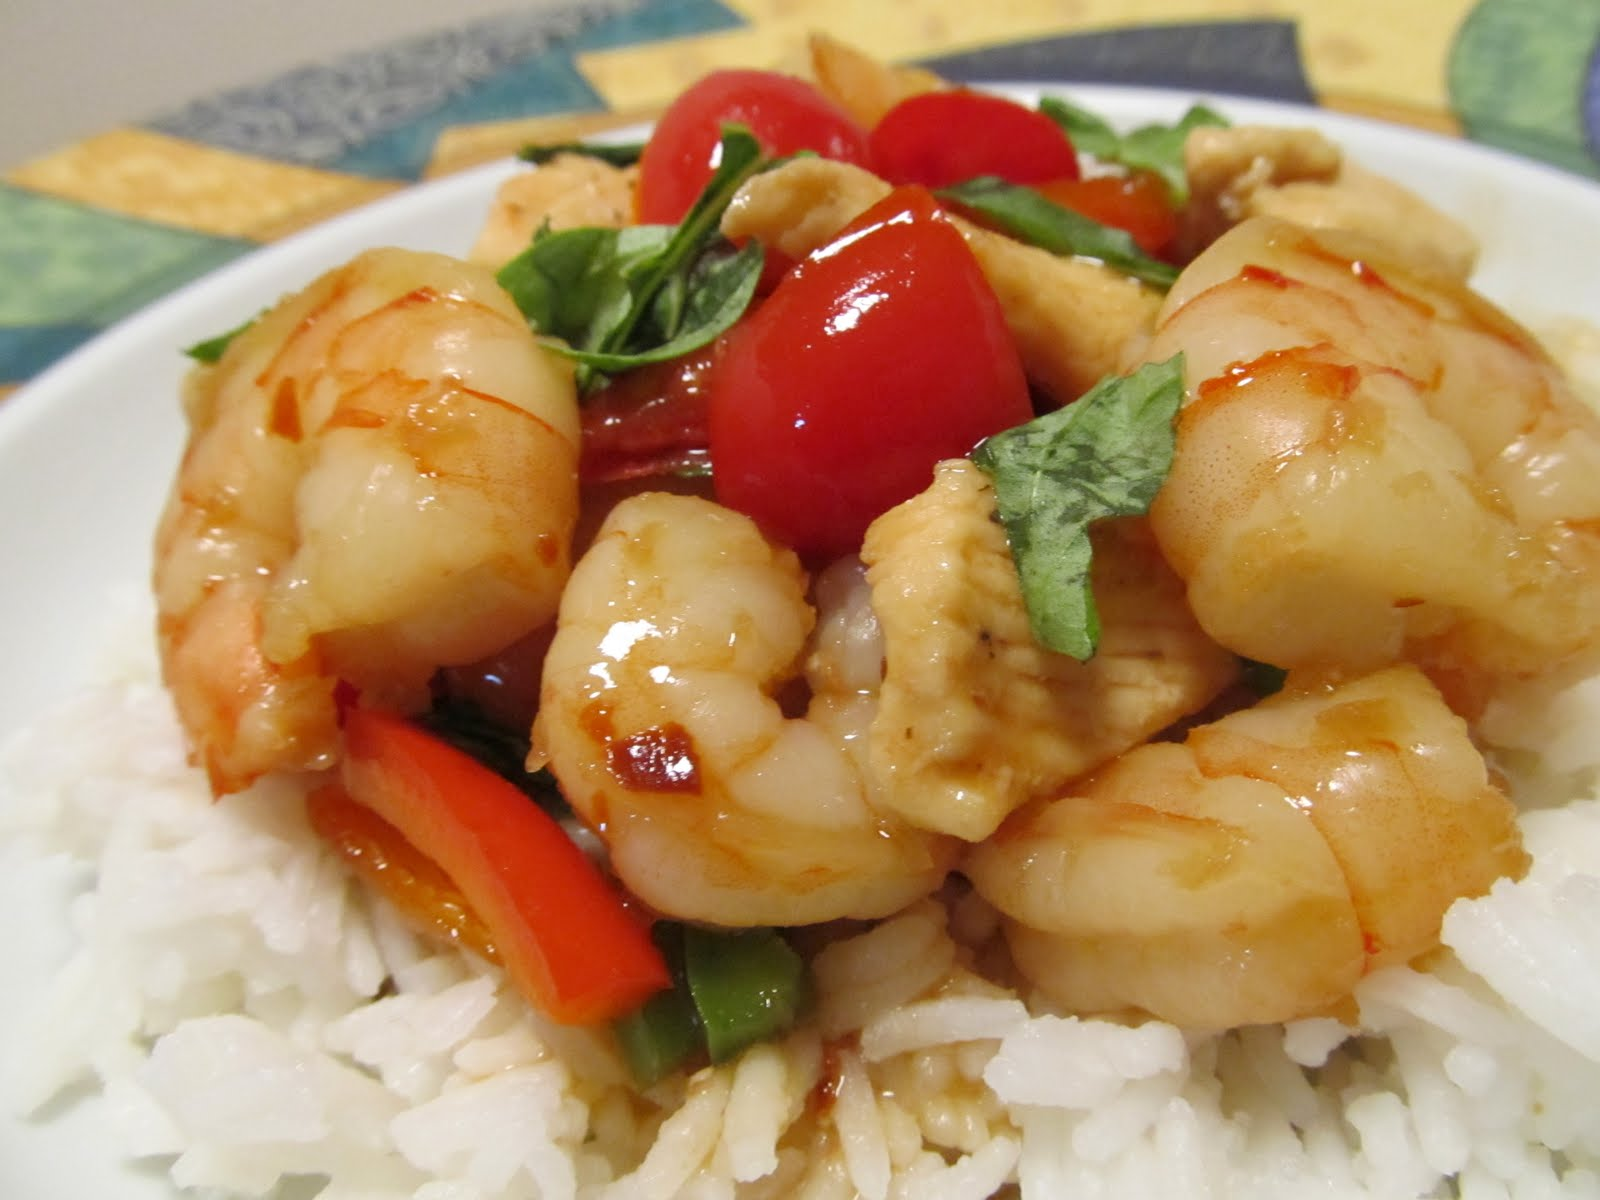 ... Food Journey: Thai Shrimp & Chicken Stir Fry with Tomatoes and Basil